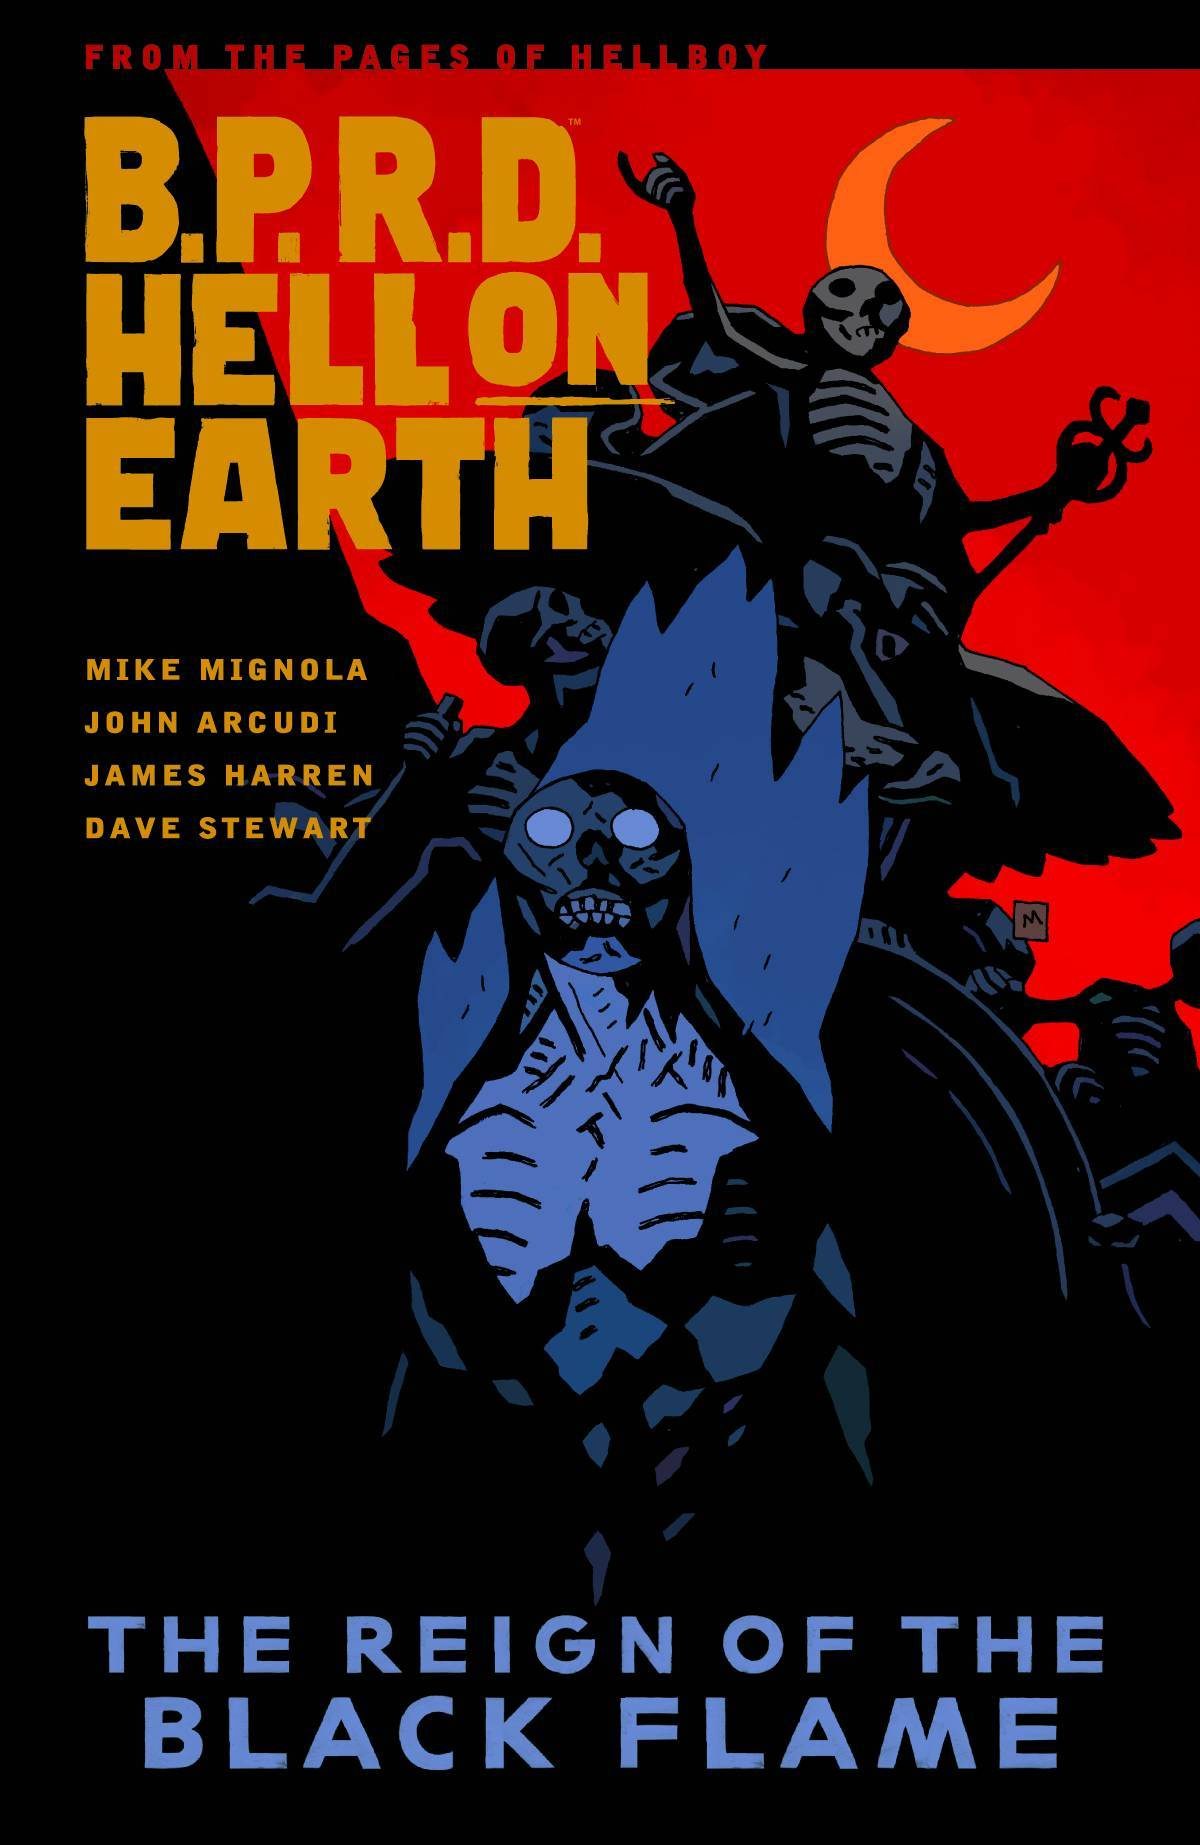 BPRD Hell On Earth Vol 09 Reign of Black Flame